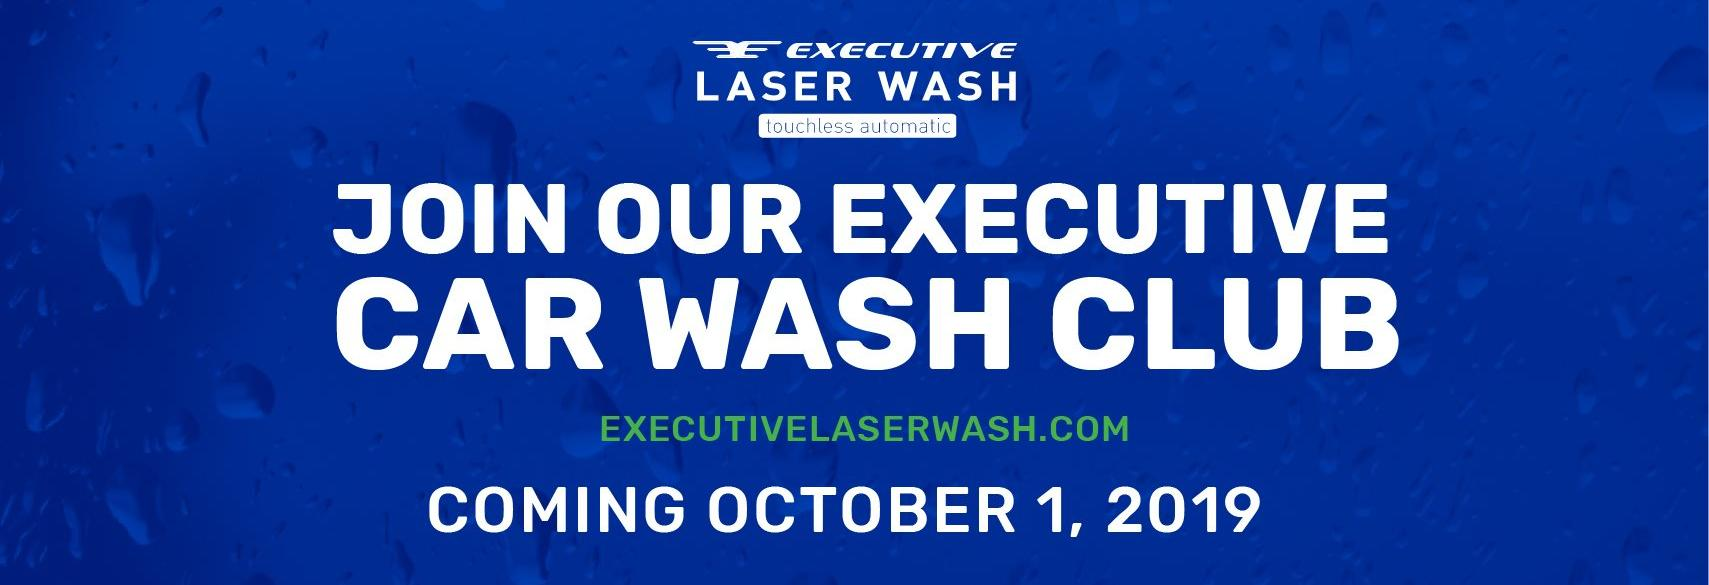 Executive Laser Wash touchless automatic clean car wash club